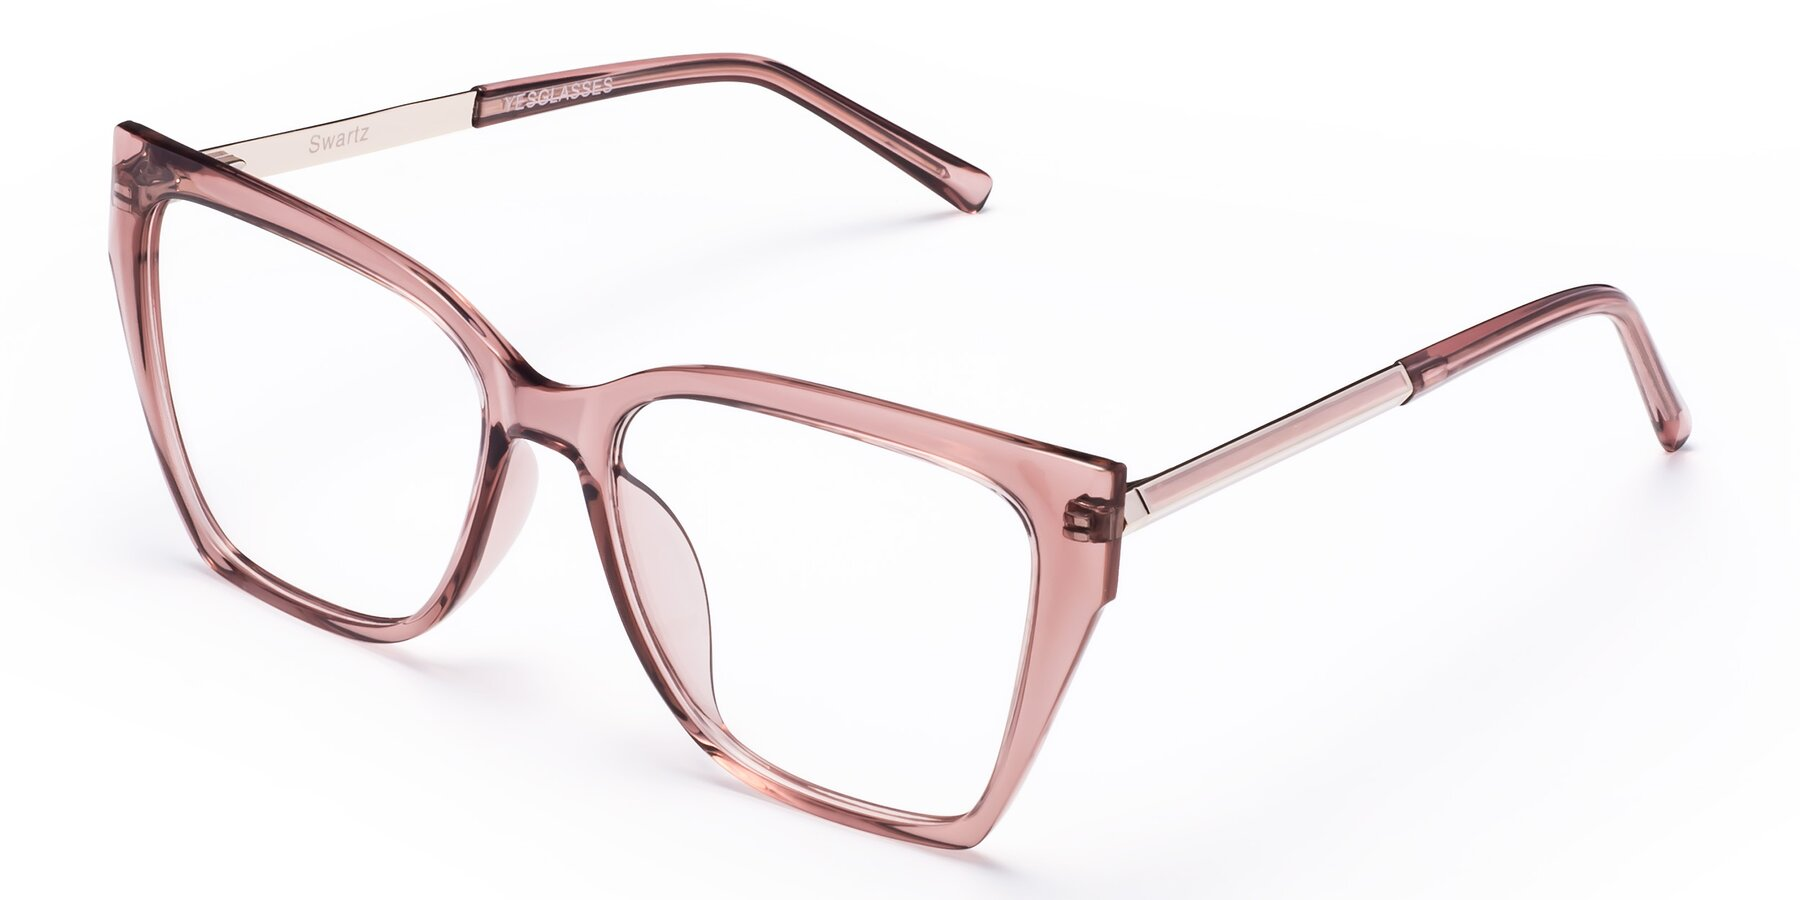 Angle of Swartz in Grape with Clear Eyeglass Lenses